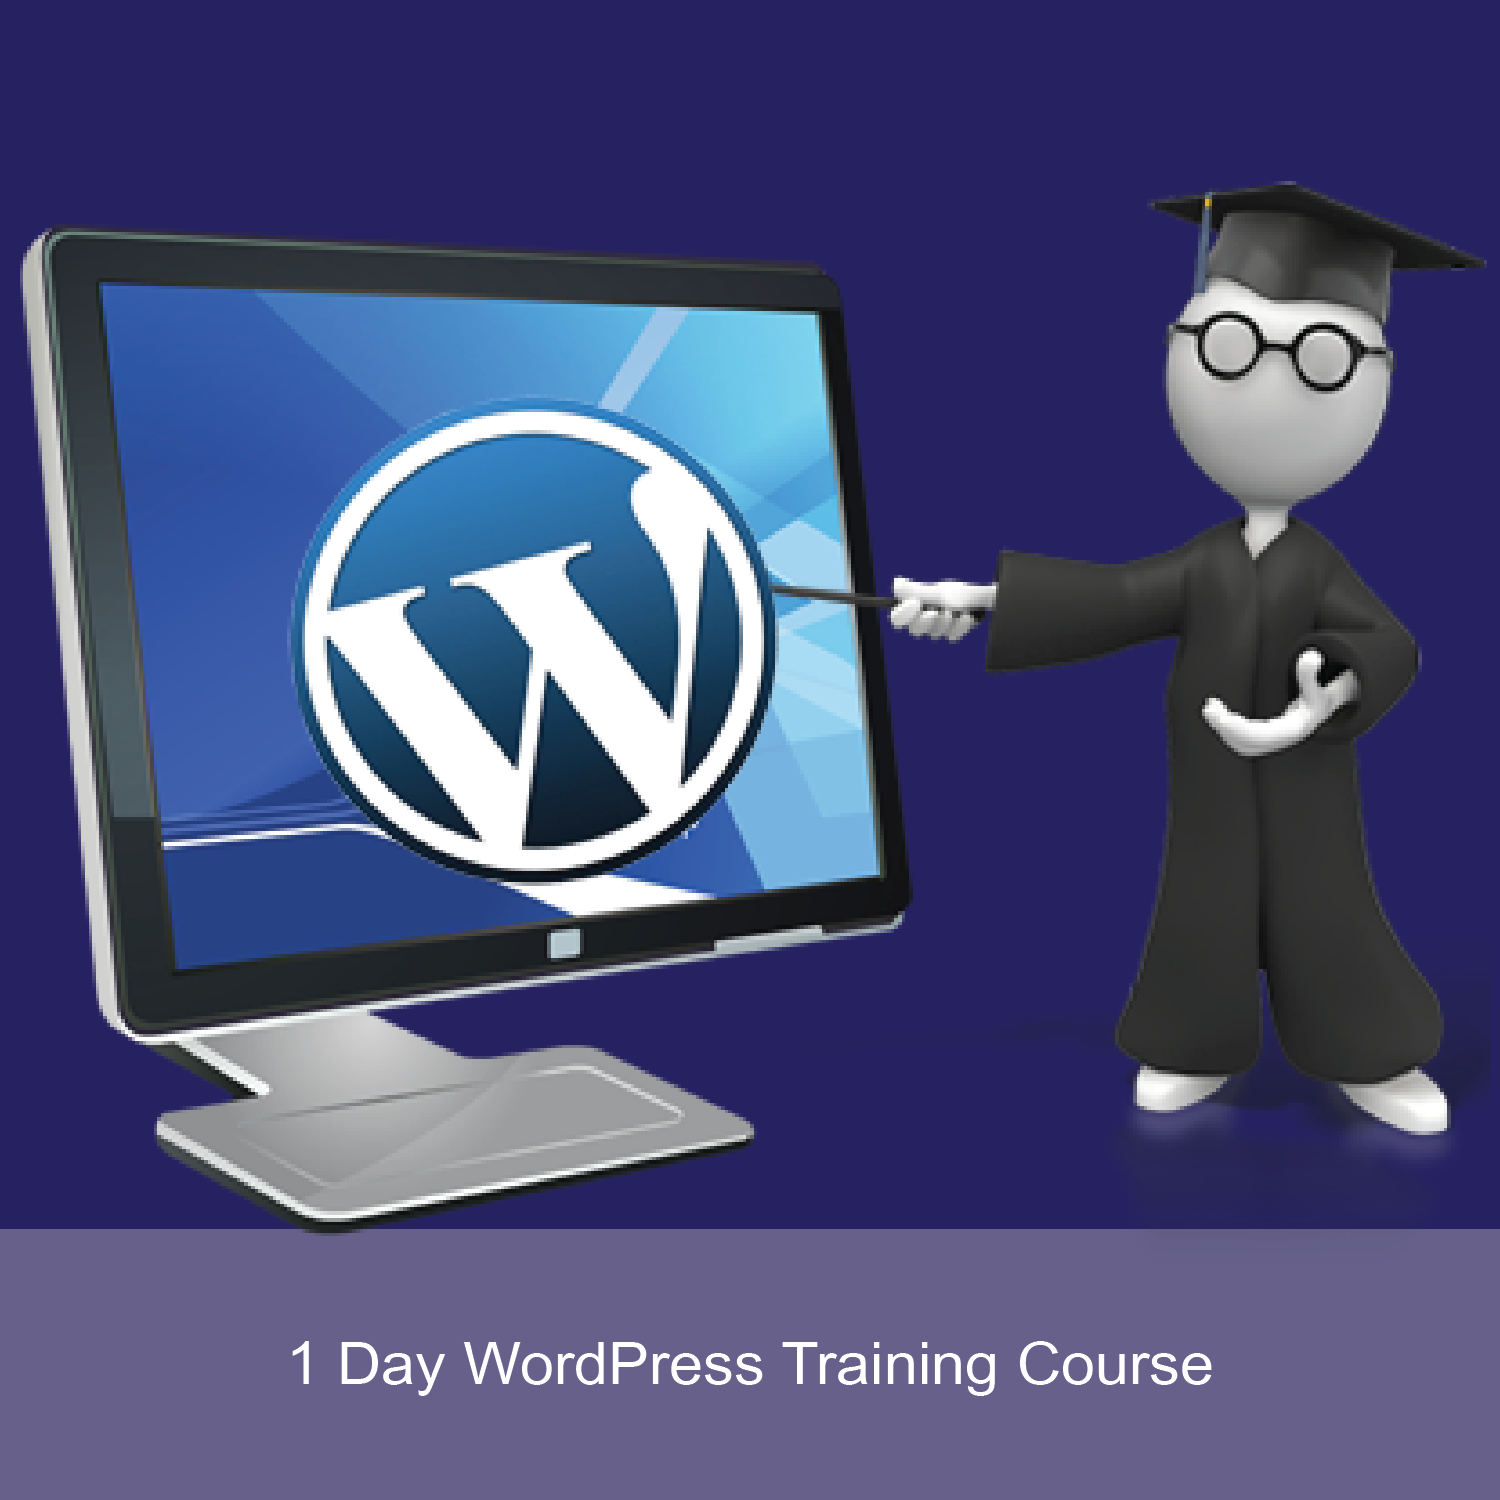 1 Day WordPress Training Course